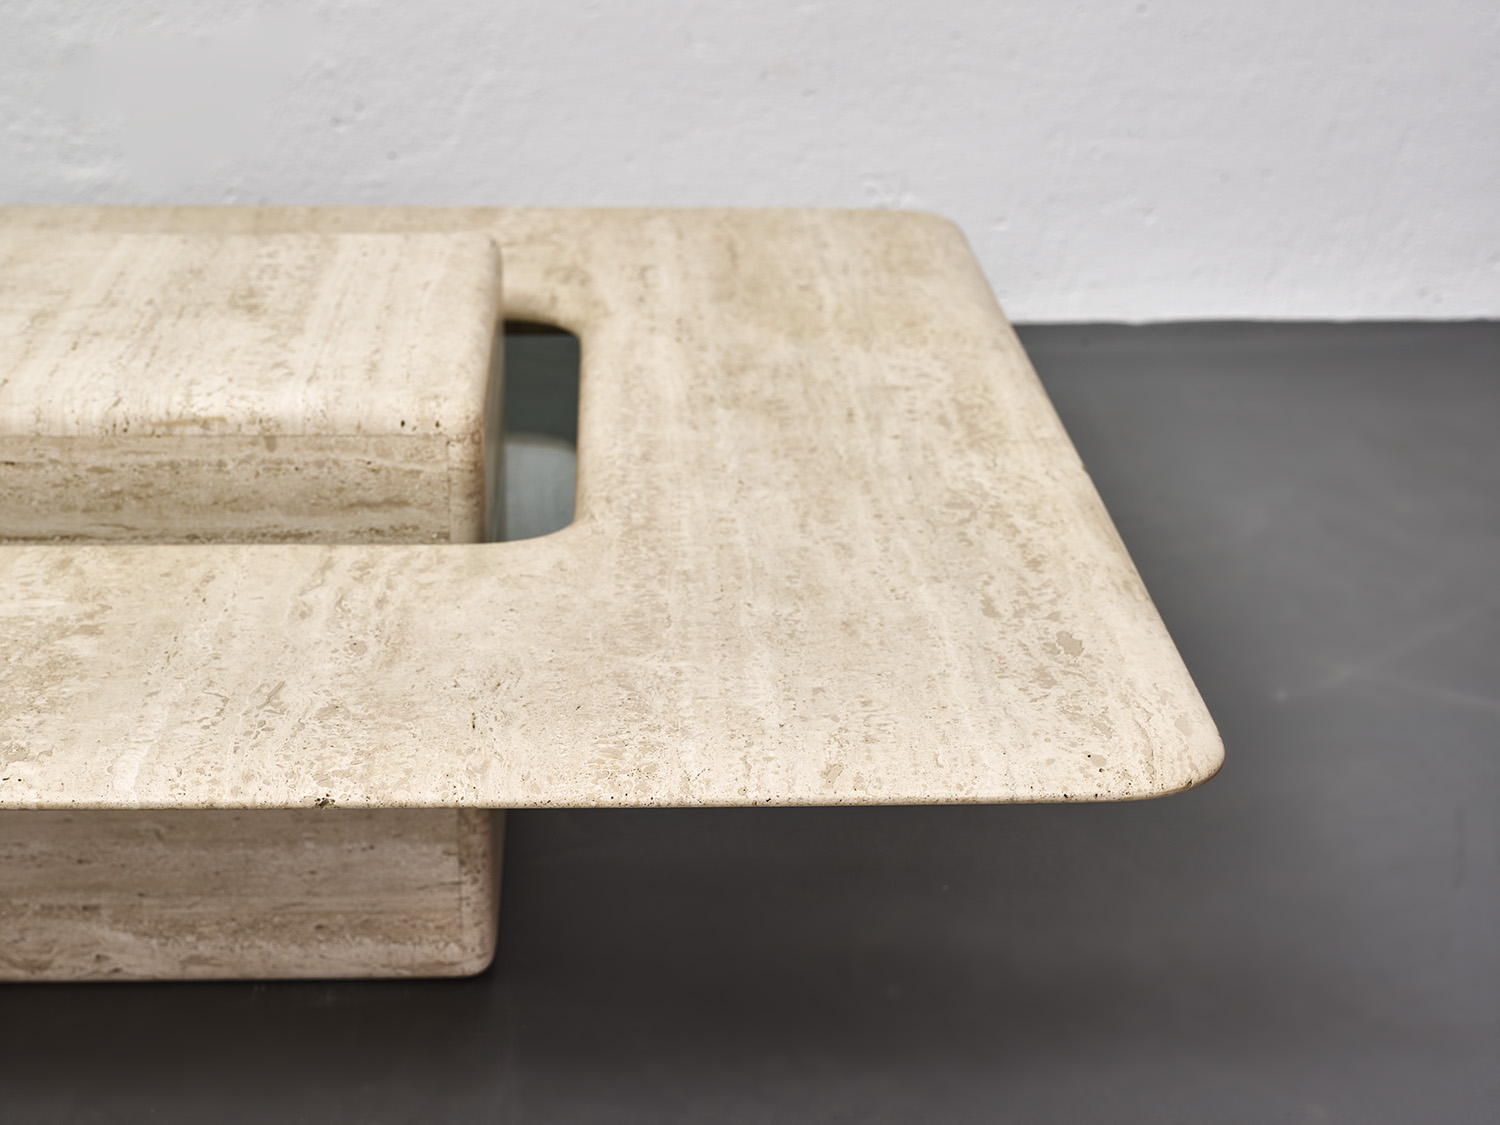 italian-travertine-coffee-table-with-floating-top-1970-1980-image-06